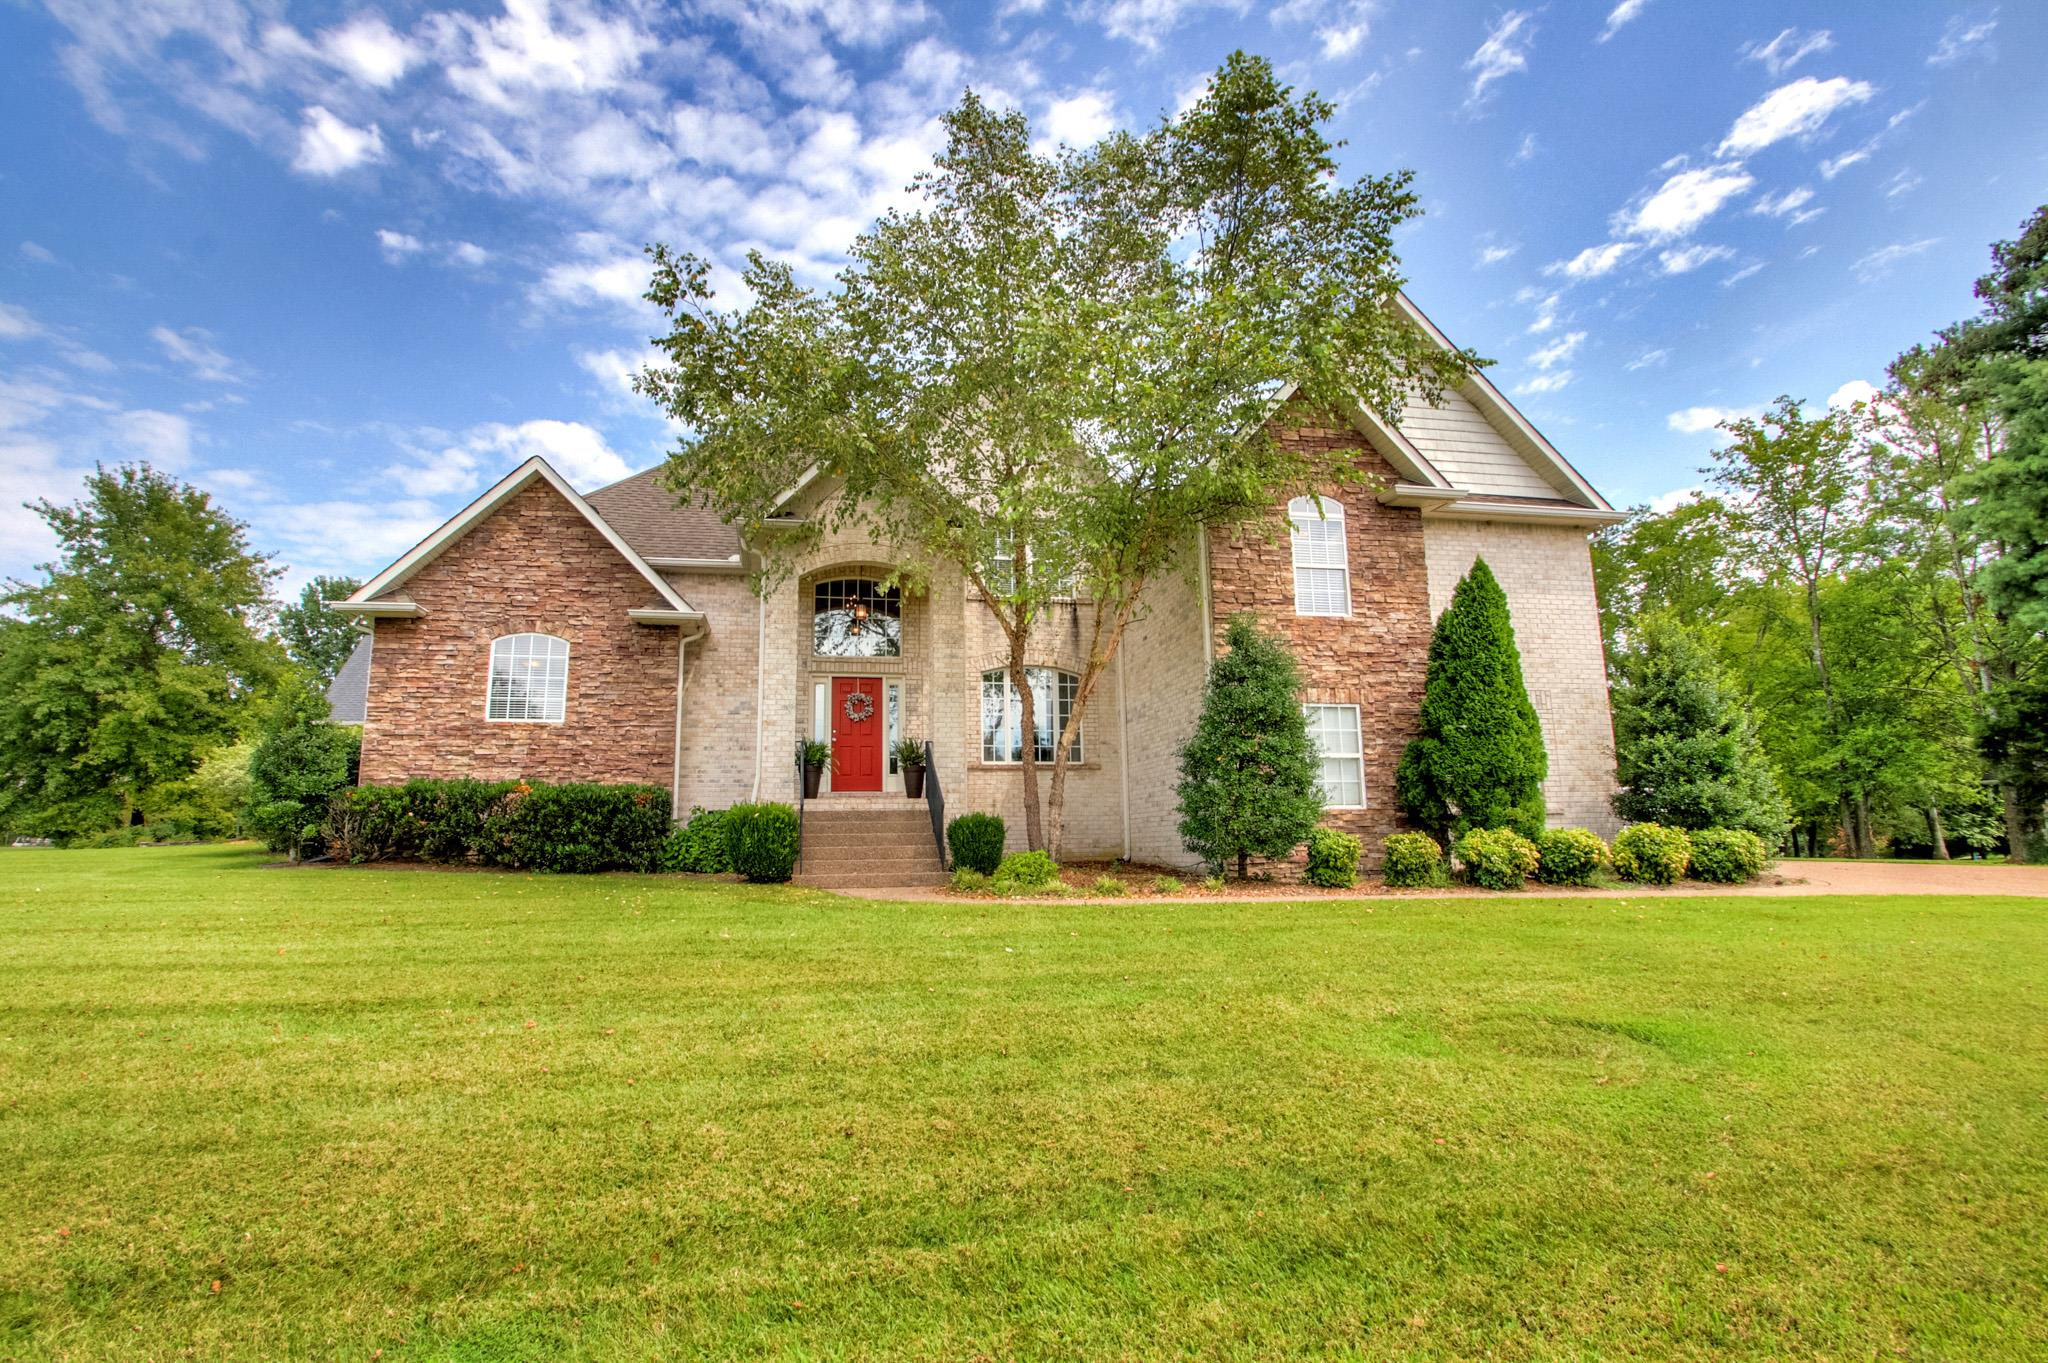 1028 Grassland Chase Dr 37066 - One of Gallatin Homes for Sale